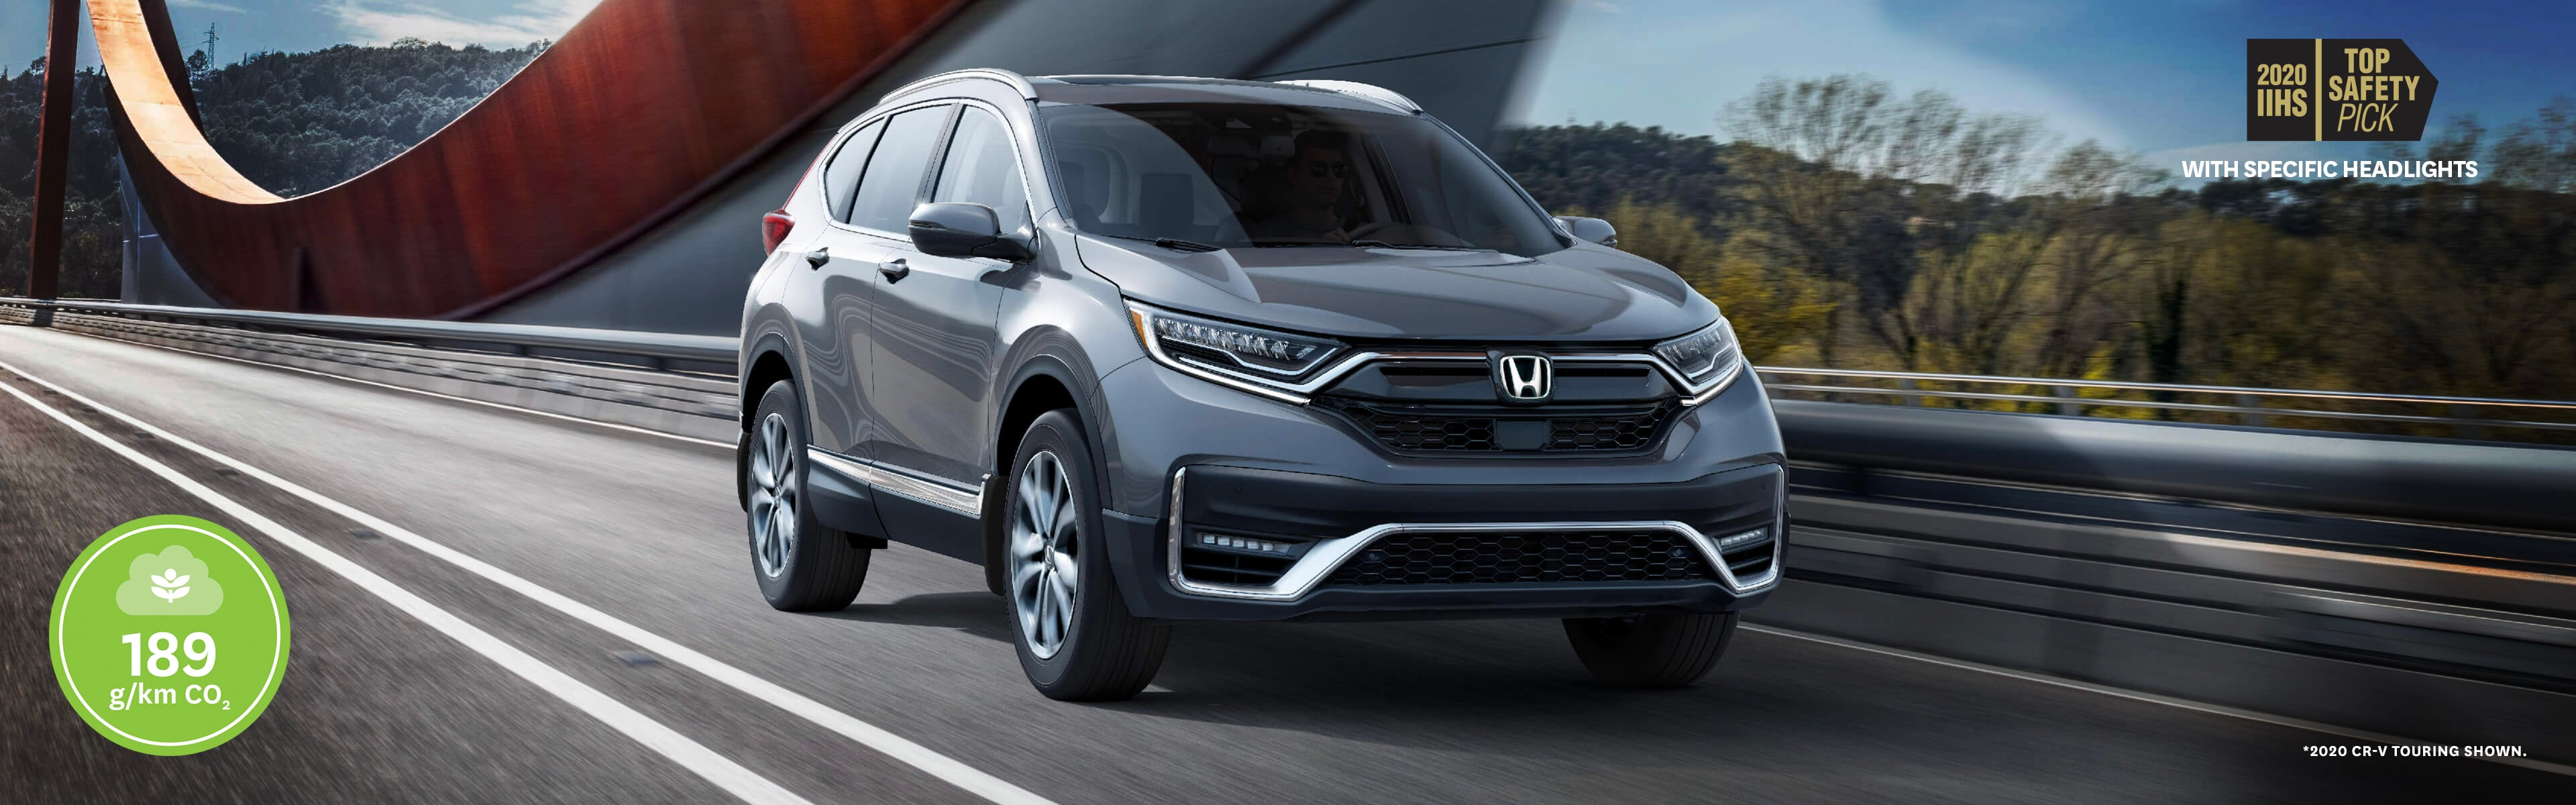 2020 Honda CR-V Touring driving over a nice paved bridge